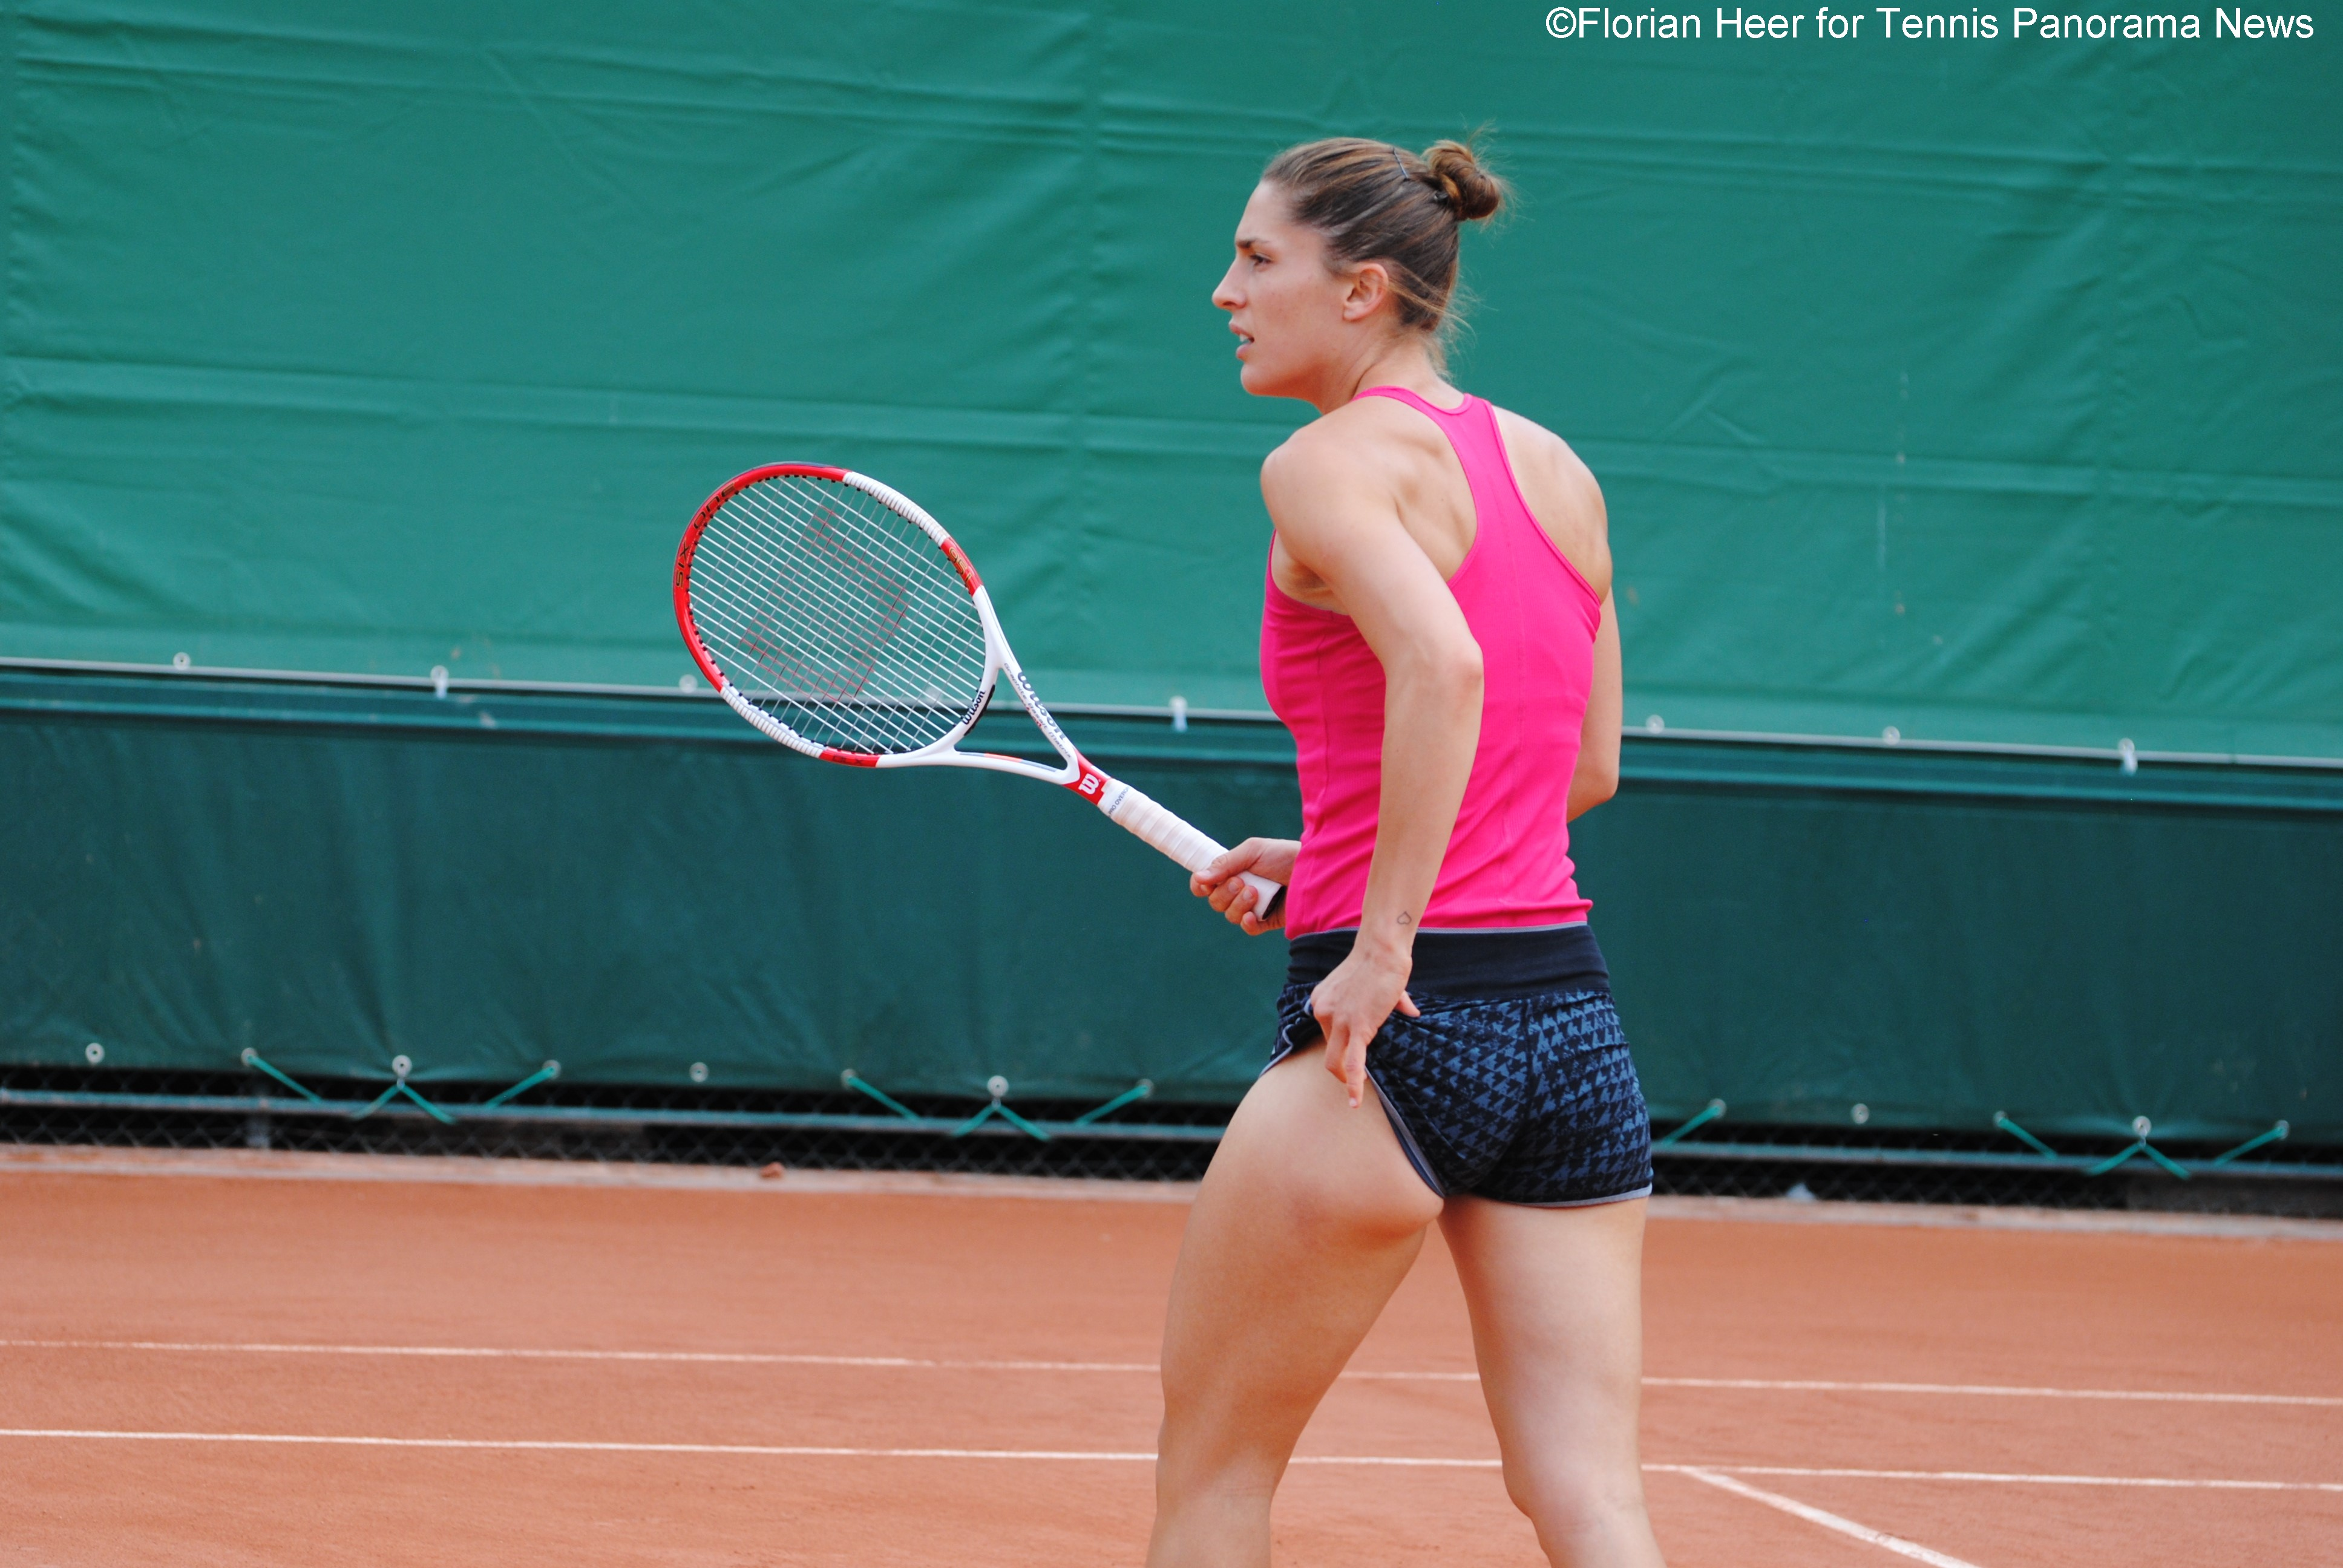 Andrea Petkovic Andrea Petkovic up to date information